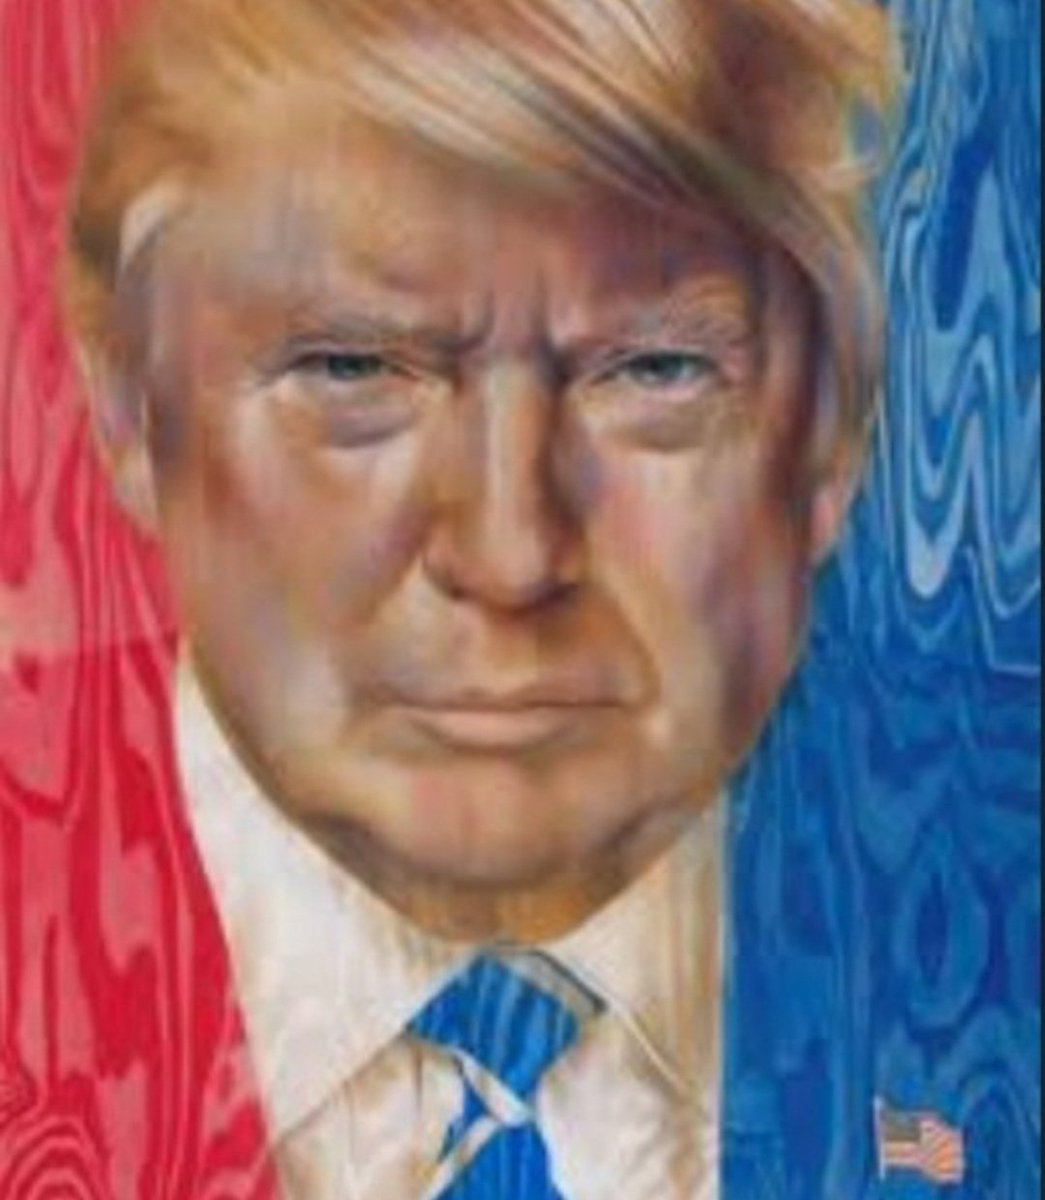 On this Tuesday, the 22nf of September 2020, I want to say Thank You to @realDonaldTrump for his strength and love for our Country.   God knew we needed your fight and perseverance to protect us against enemies abroad and near.   God Bless you, President Trump! 🙏🏼 https://t.co/bzZxL53Gvv